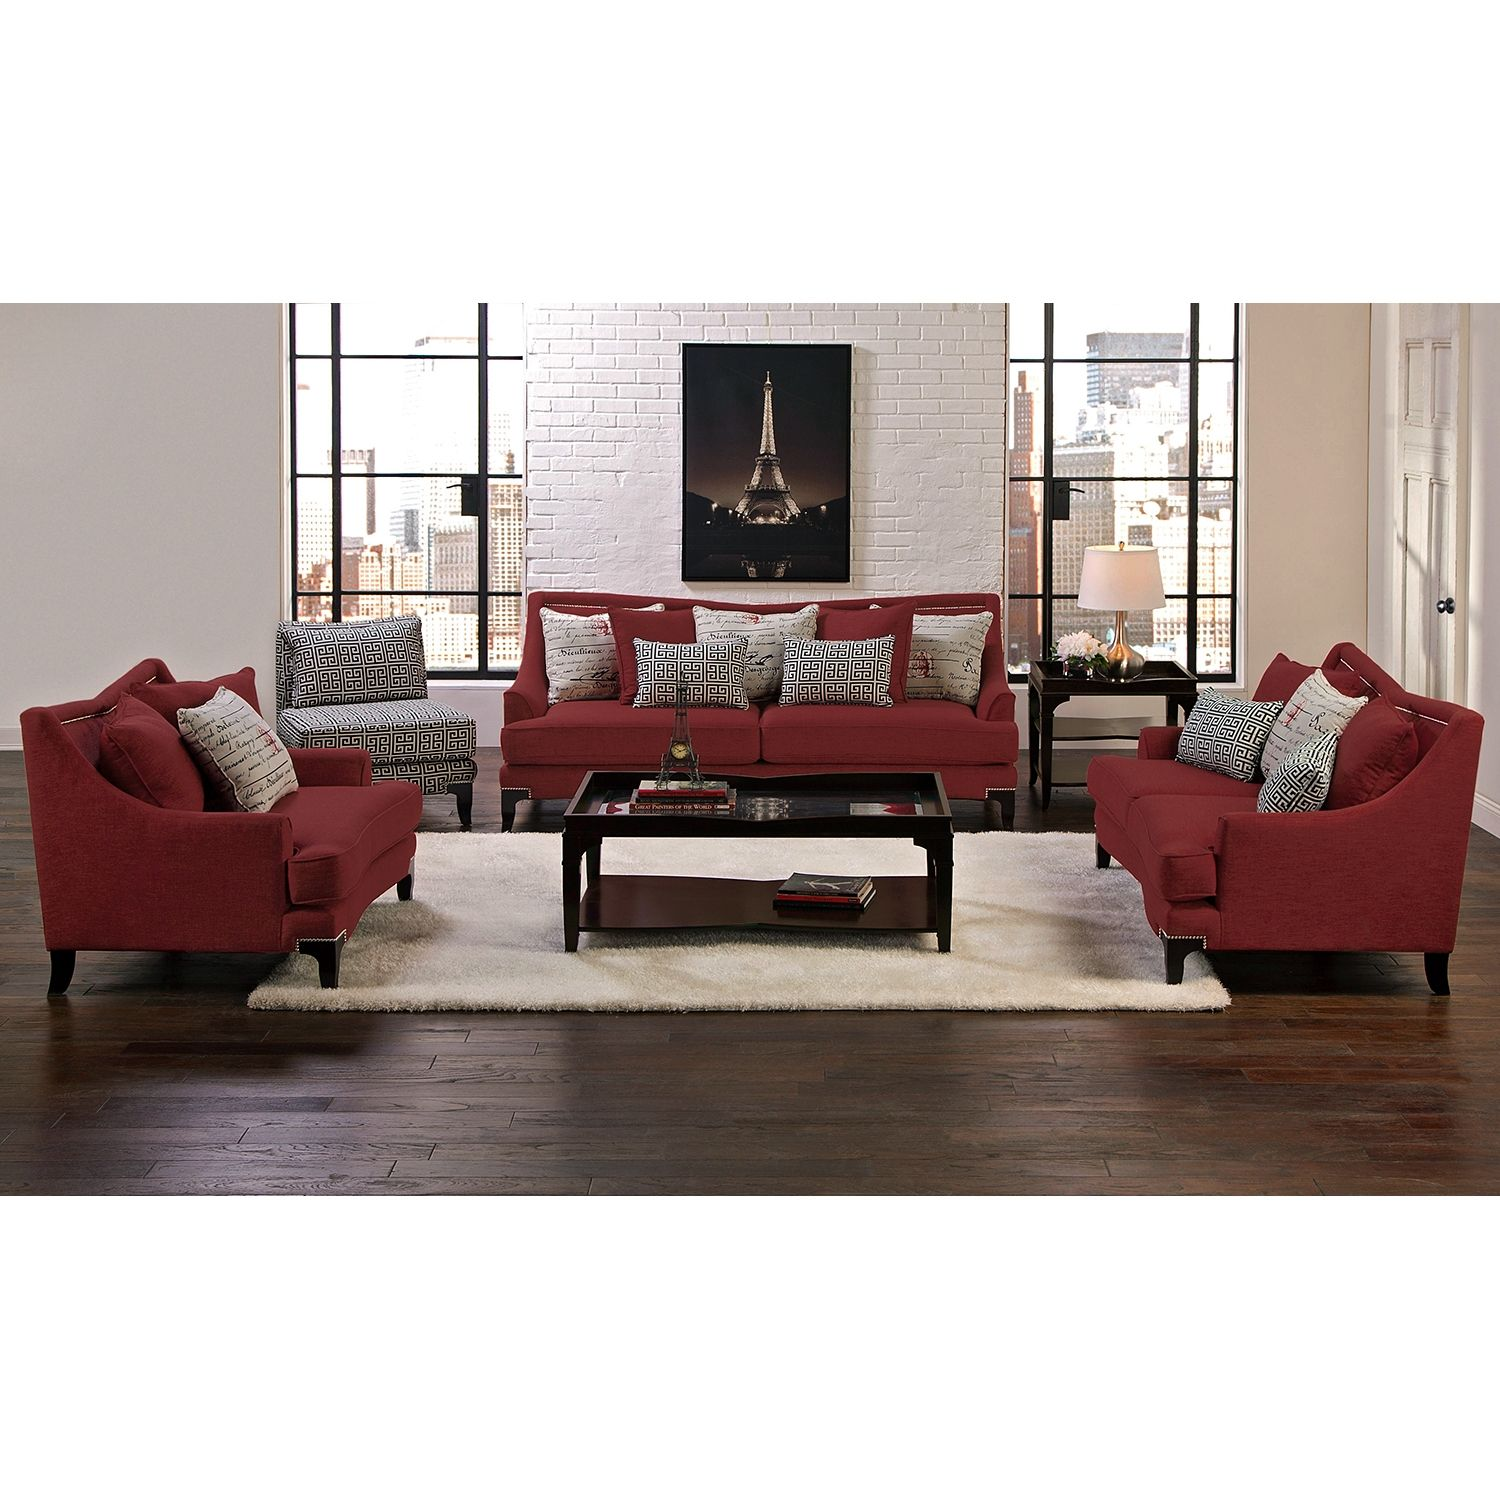 Free Furniture Mississauga Sofa Bed Donation Value Baci Living Room